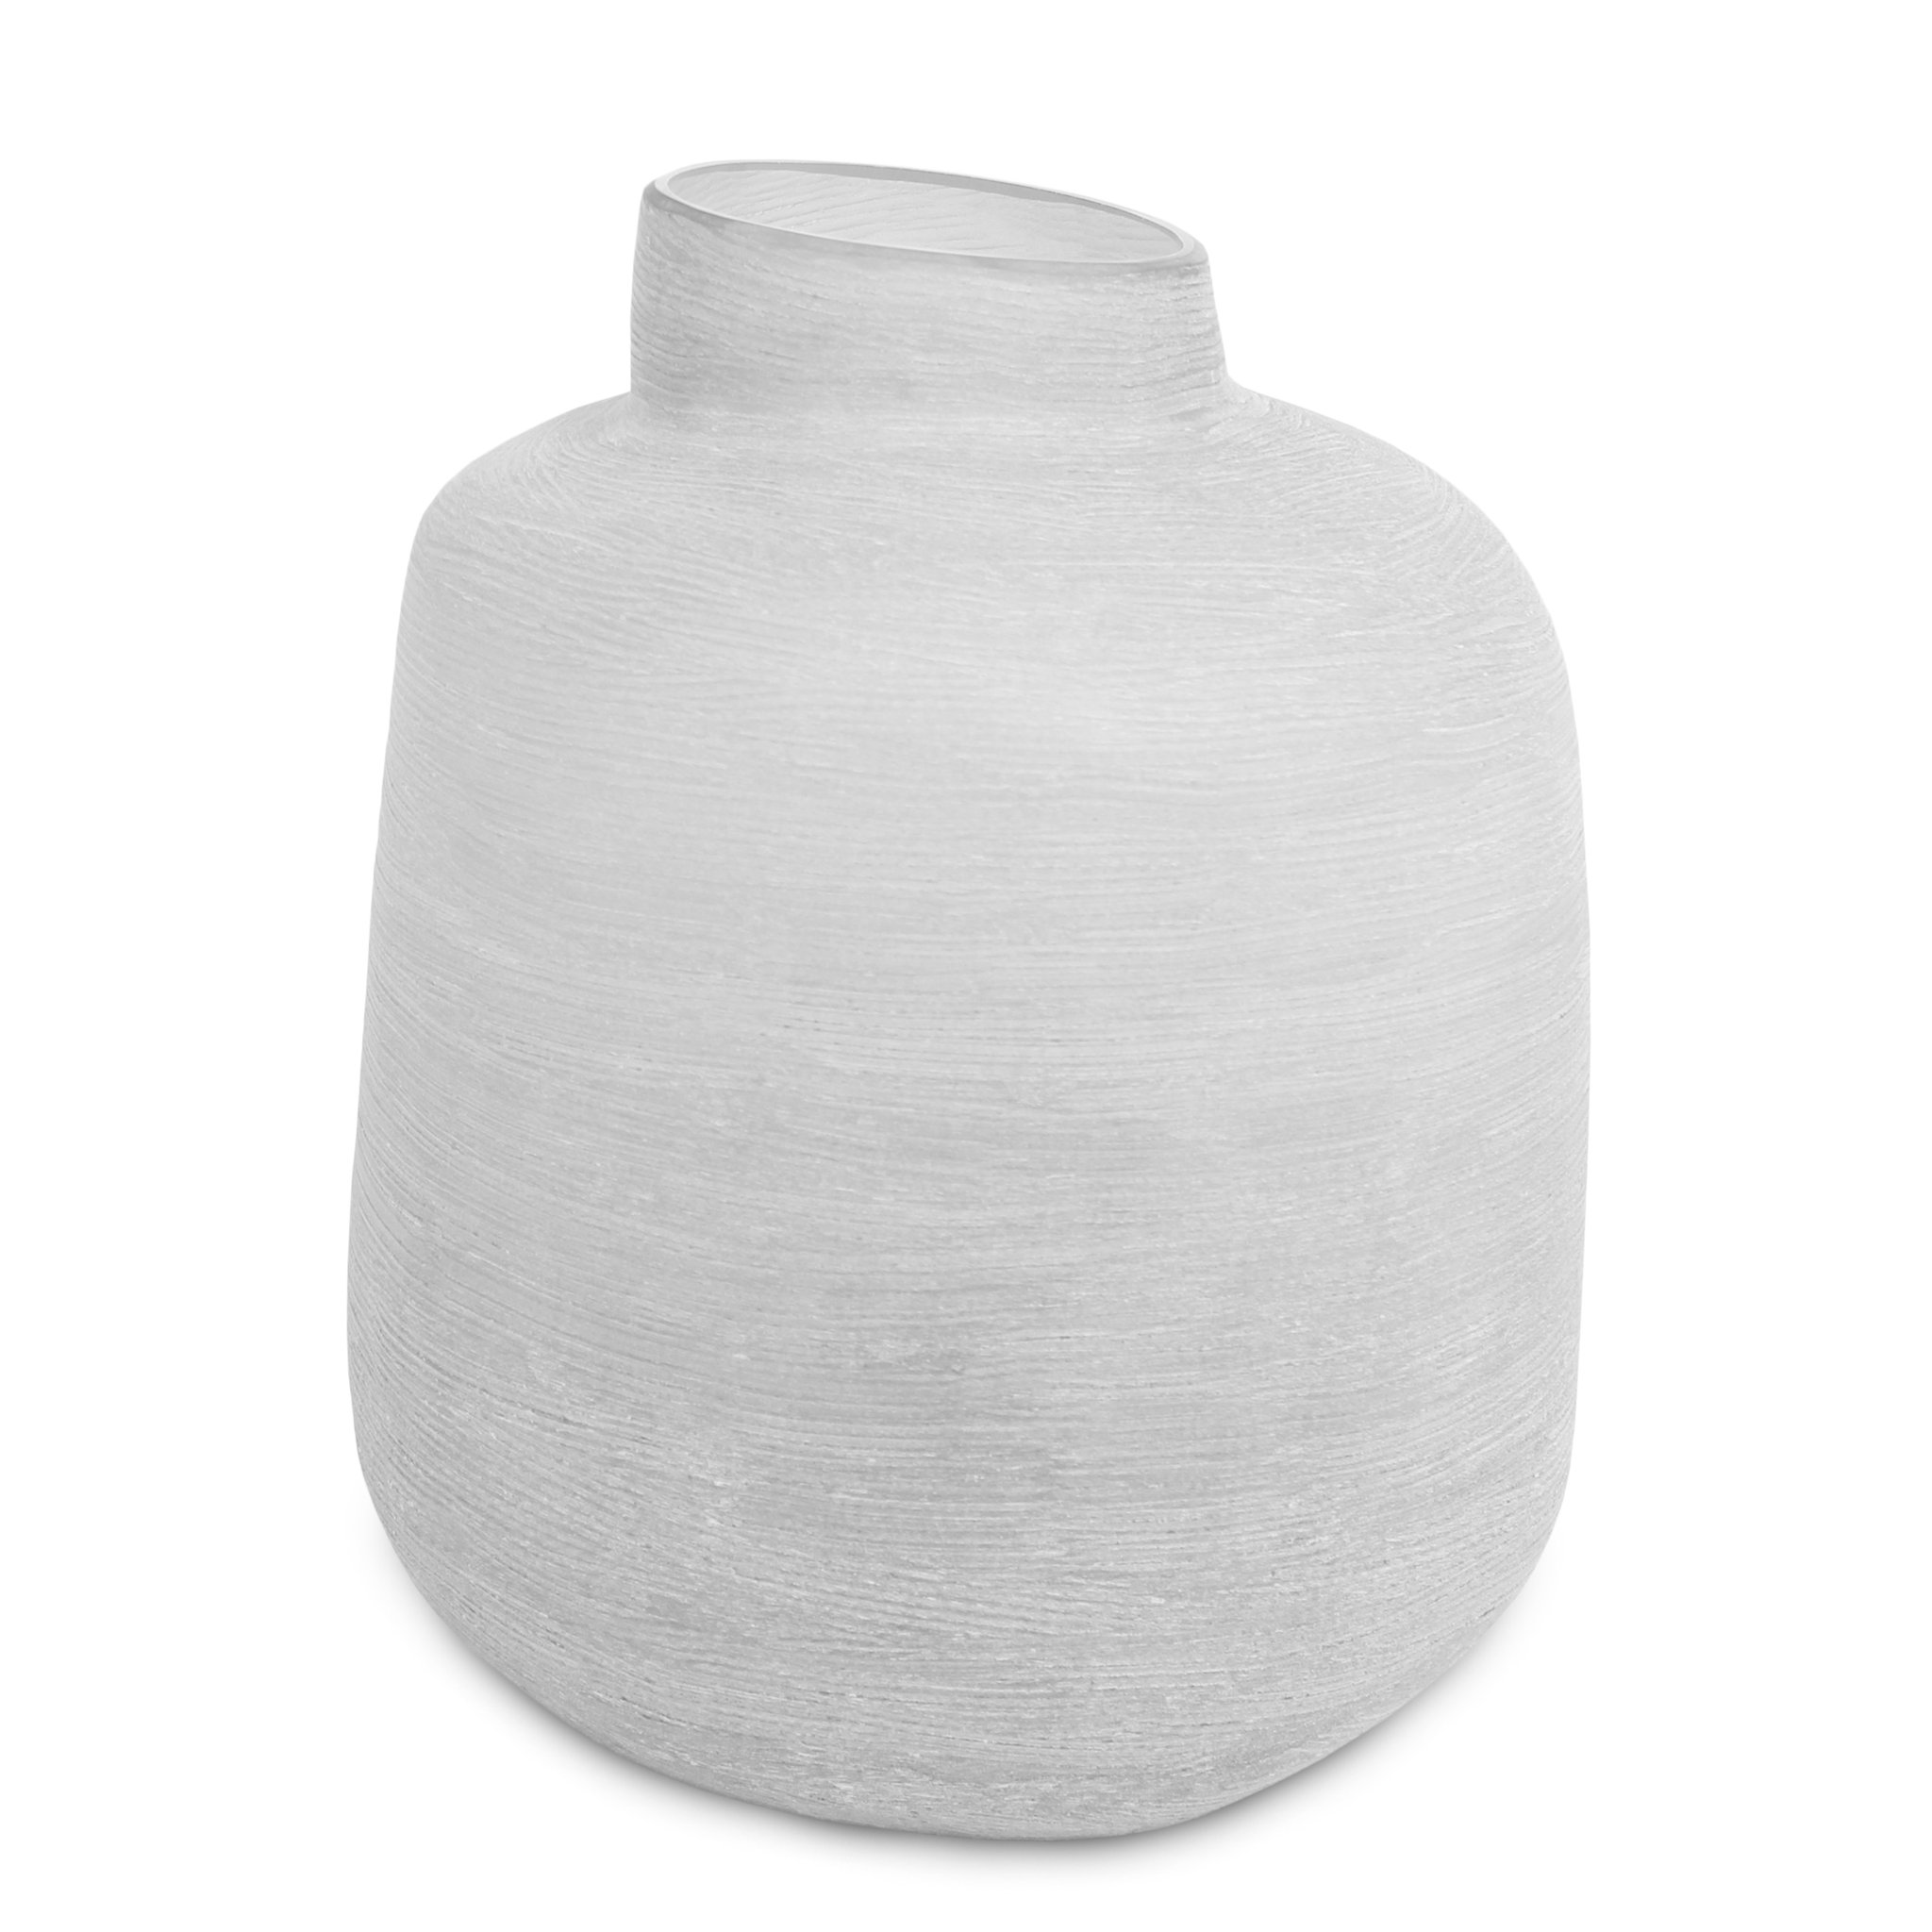 Ono Vase Large Clear